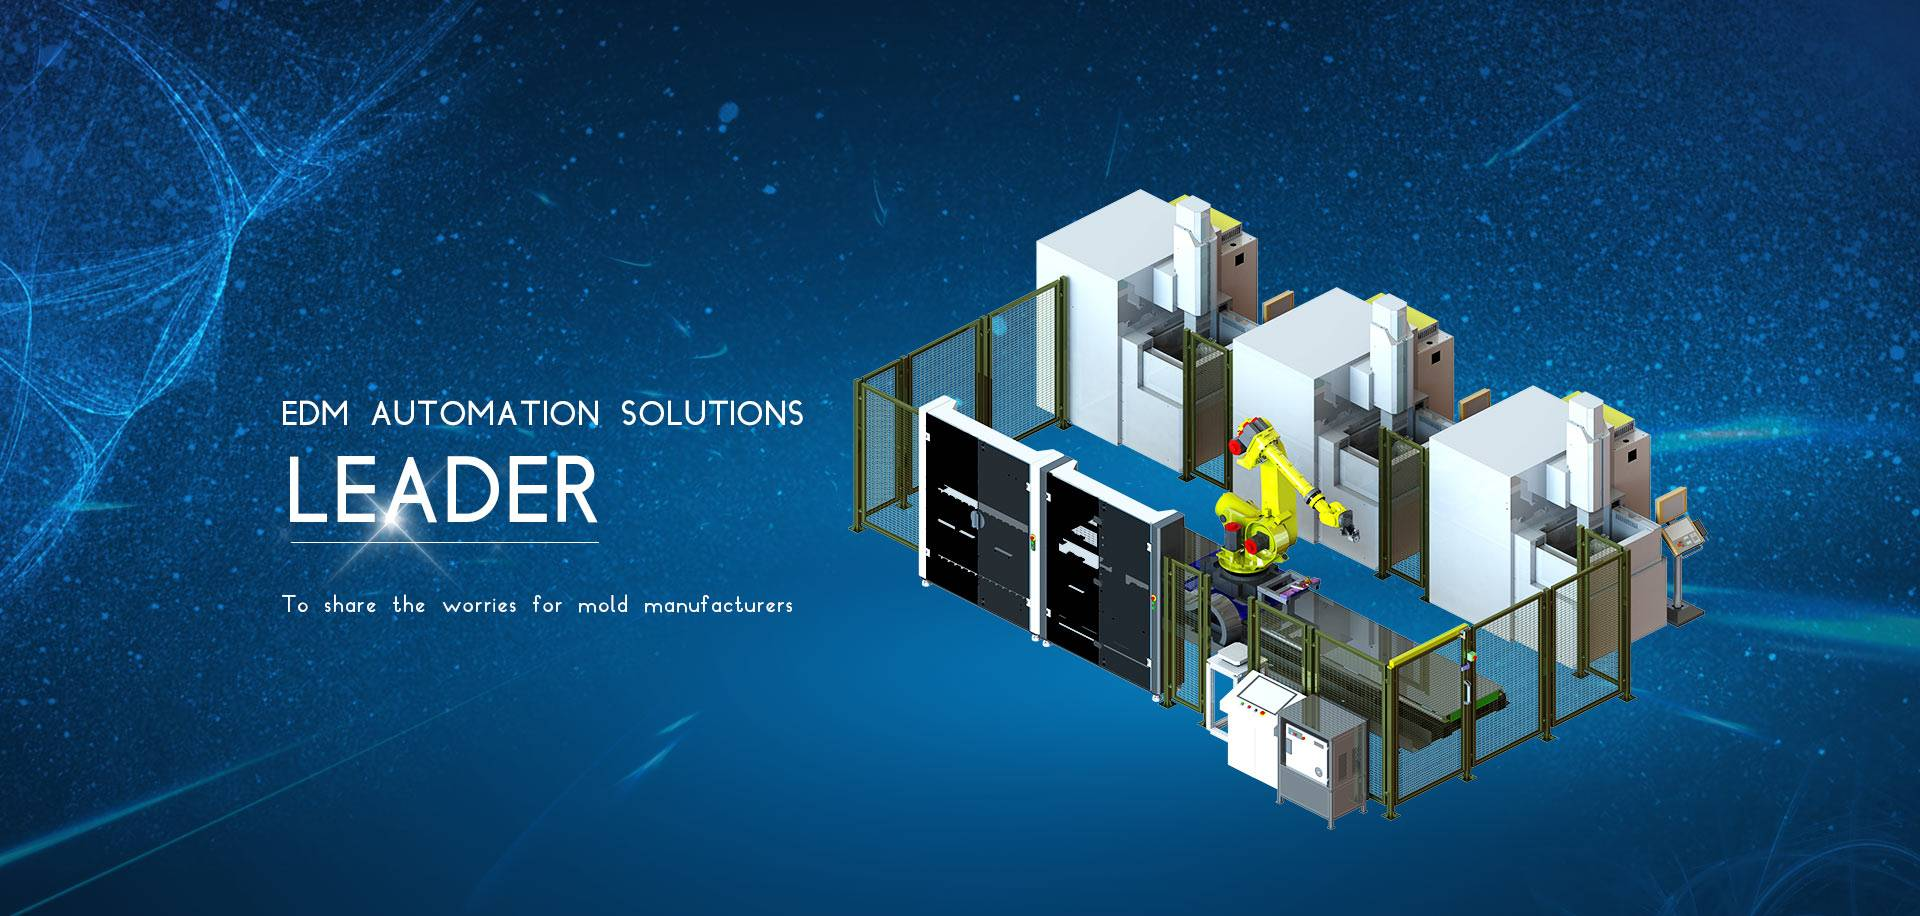 EDM-automation-solutions-leader